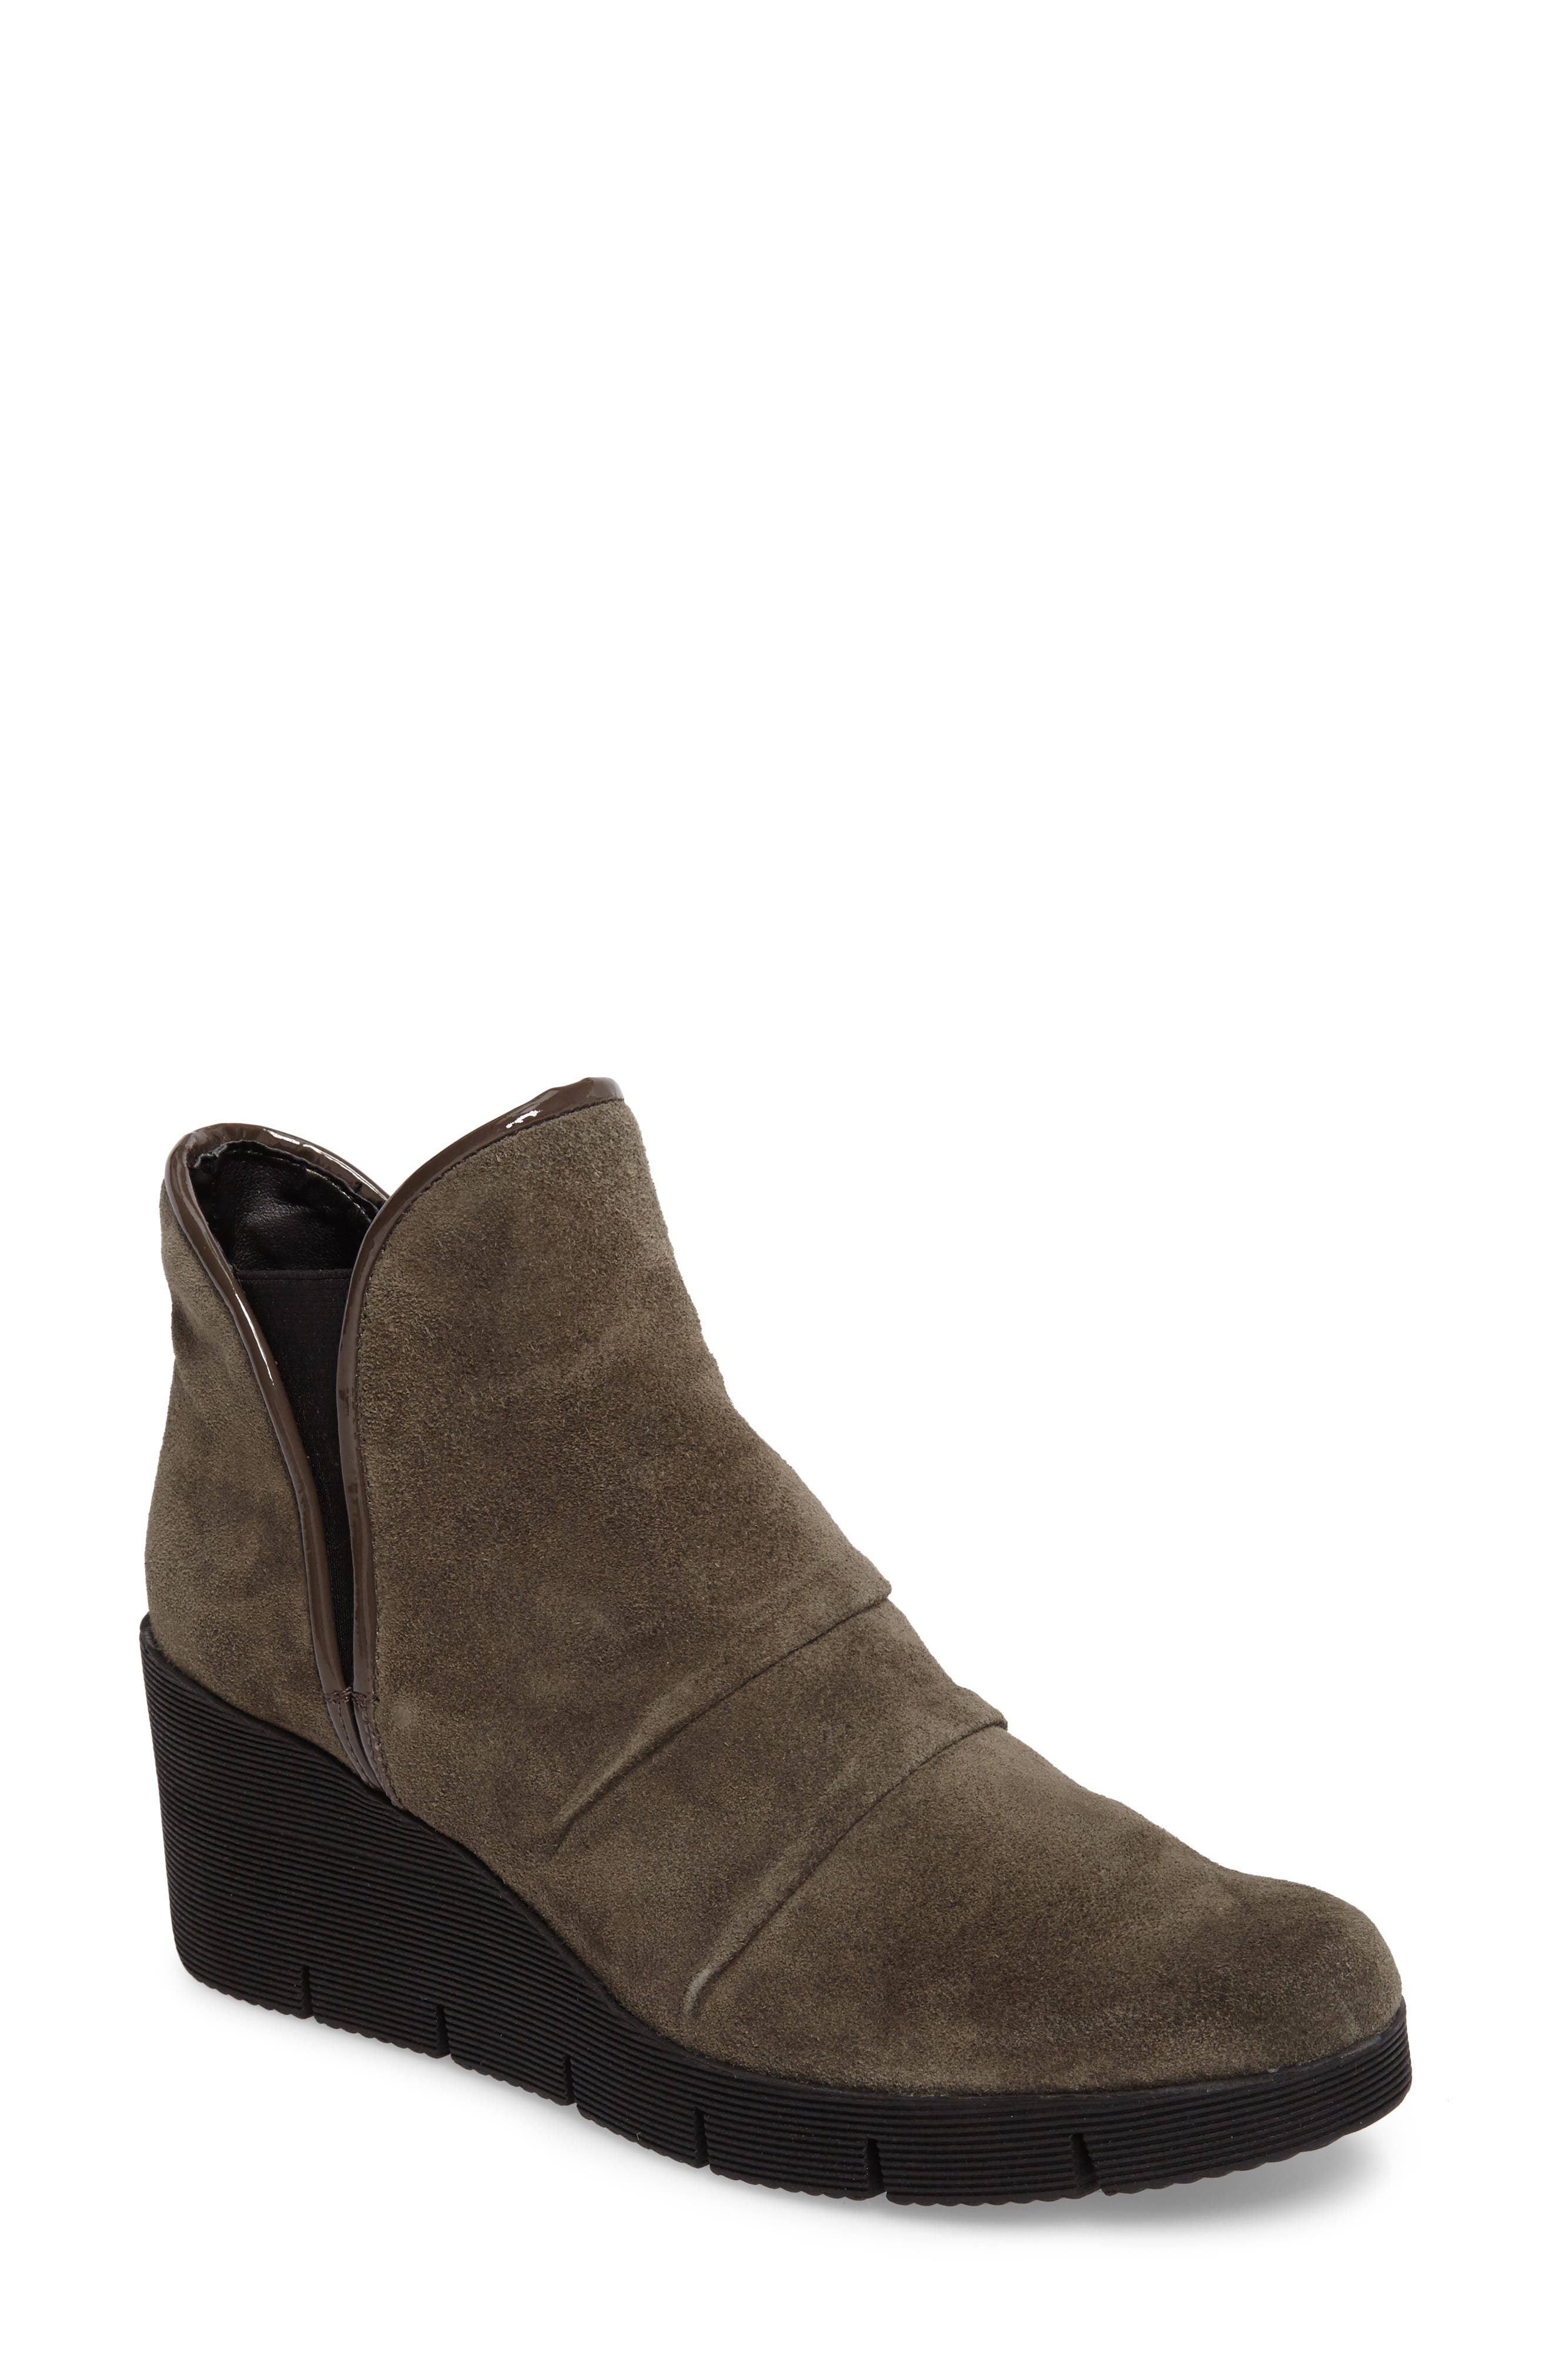 'Spaceless' Chelsea Wedge Boot,                         Main,                         color, Khaki Suede